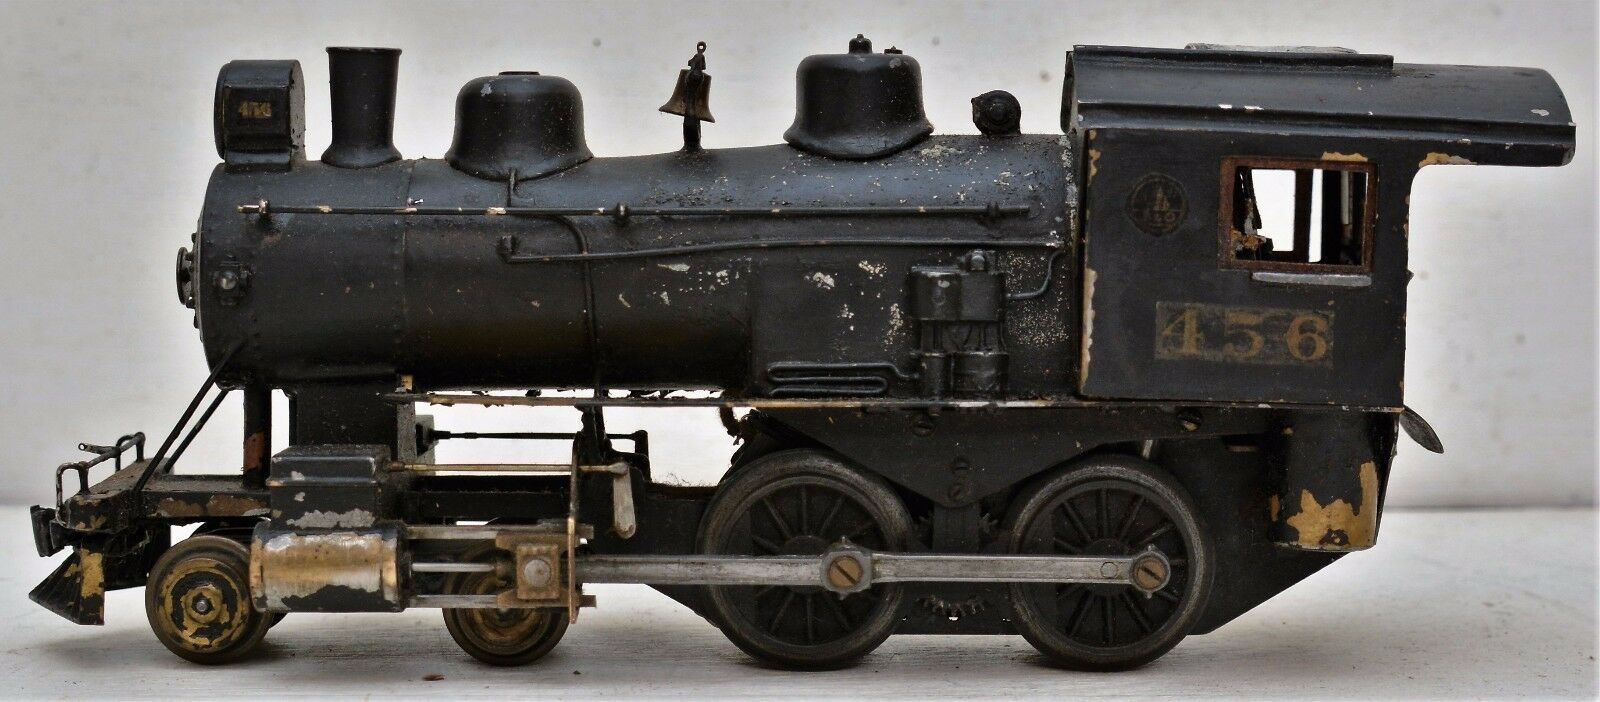 Vtg Kit Bash B&O Steam Locomotive 456 Prewar Post War O Scale 4-4-0 No Tender